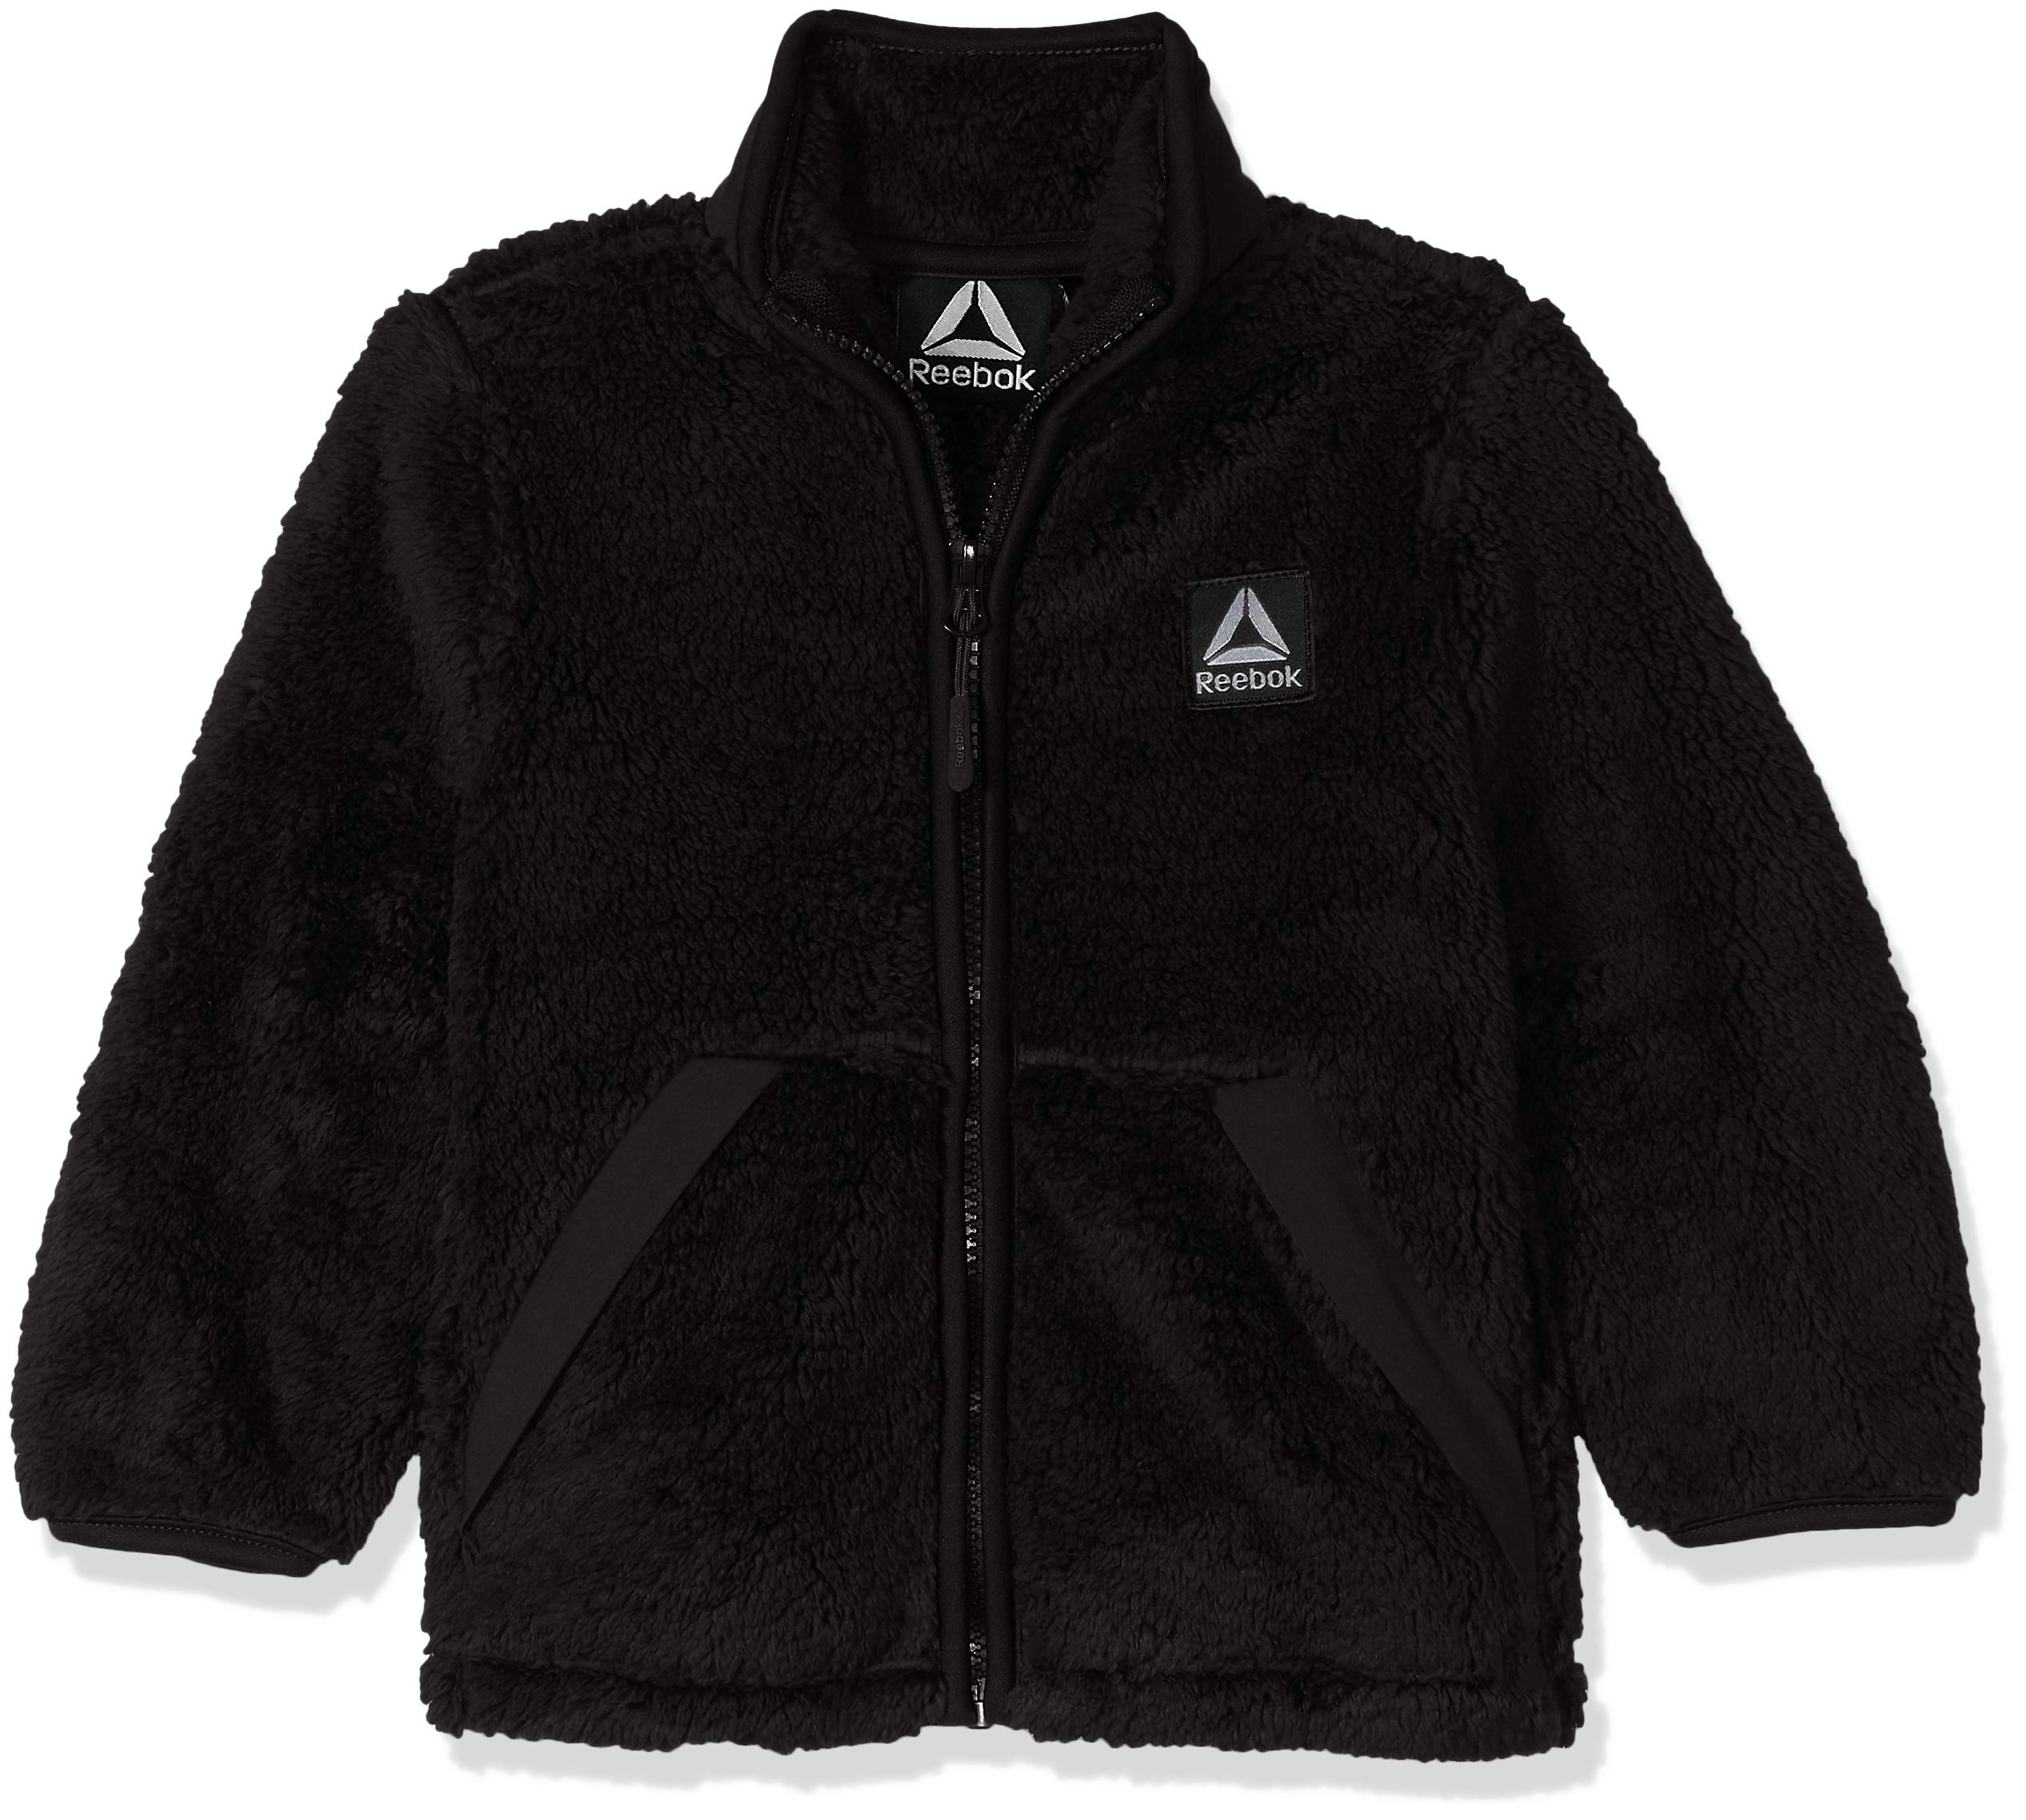 Reebok Boys' Little Active Double Sided Fleece Jacket, Black, 5/6